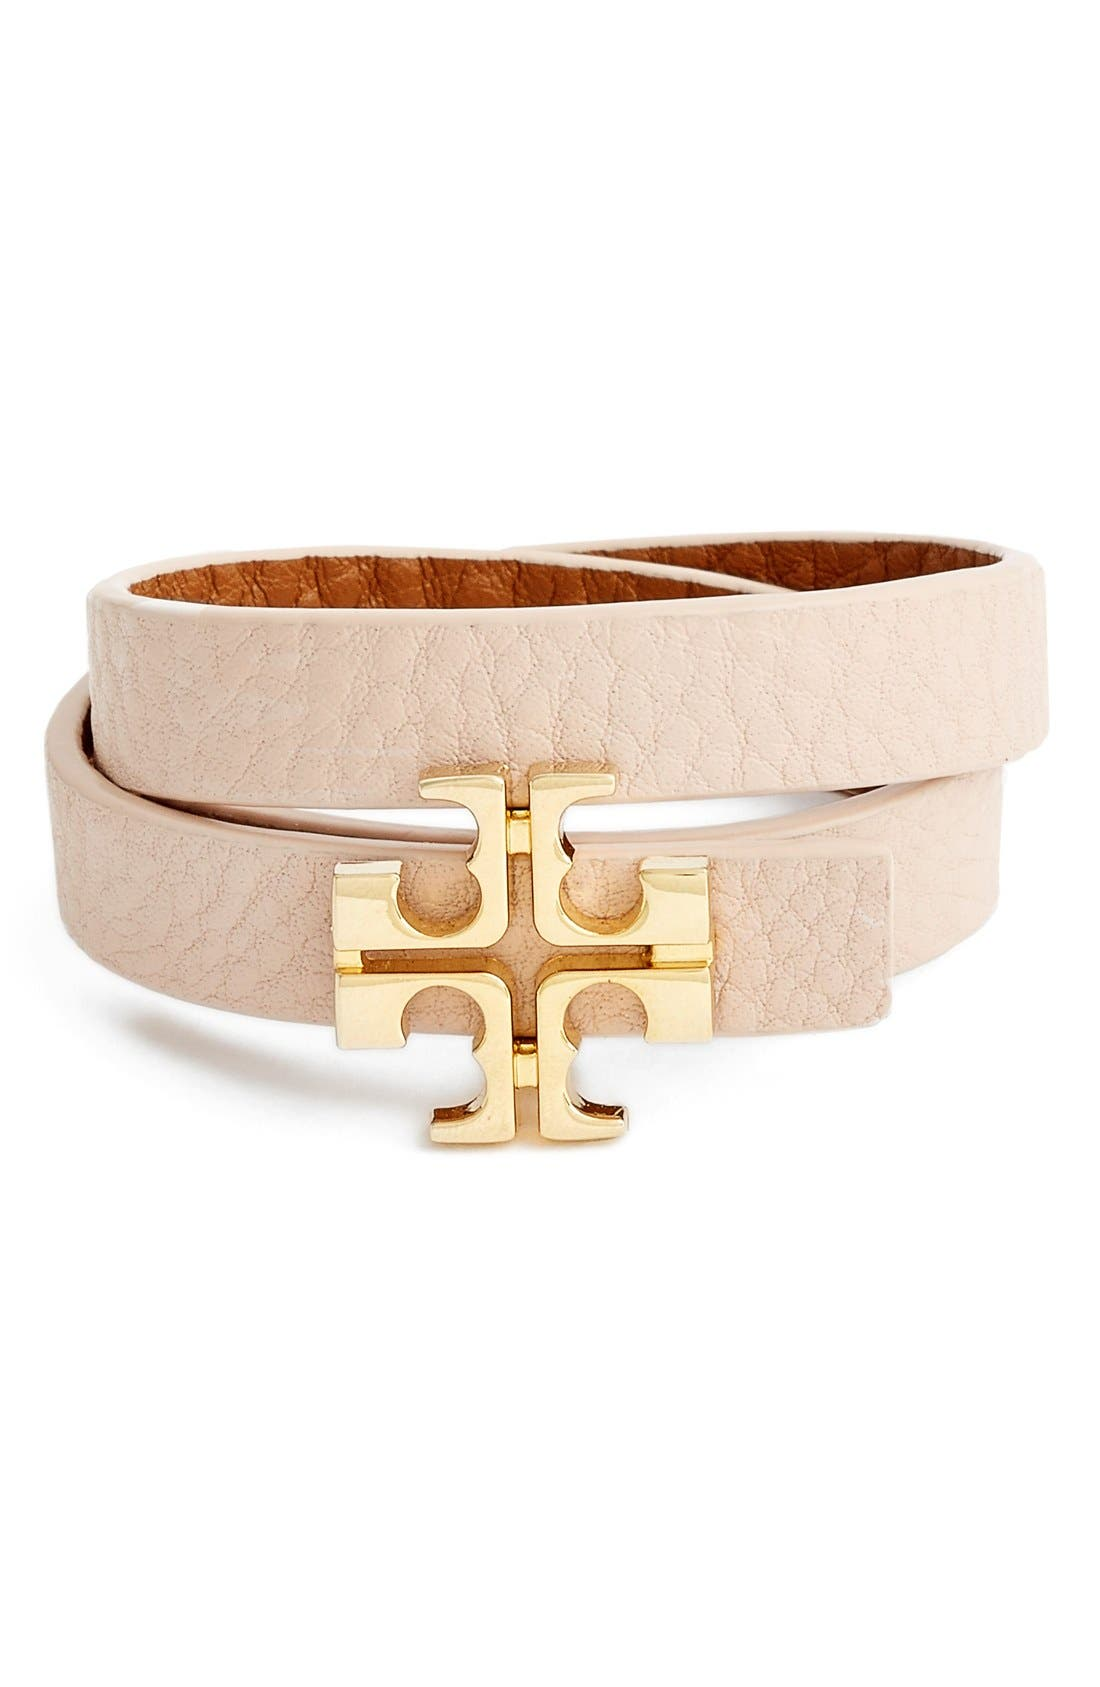 Alternate Image 1 Selected - Tory Burch 'Split T' Reversible Leather Wrap Bracelet